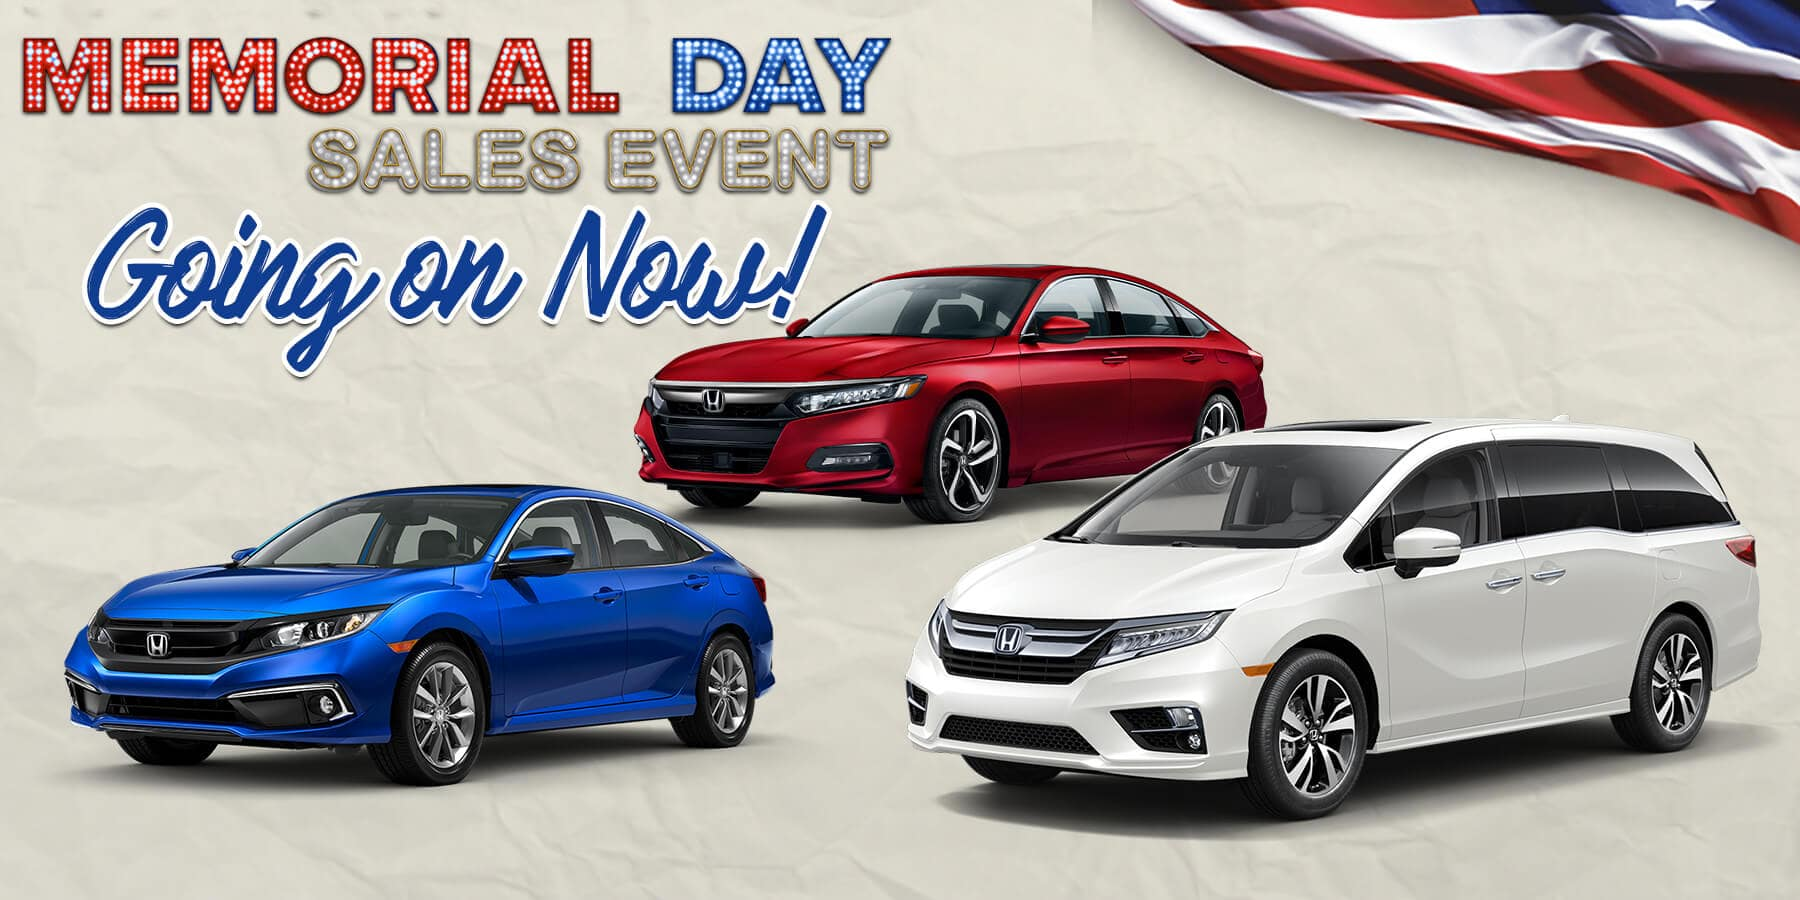 Memorial Day Sales Event Going on Now